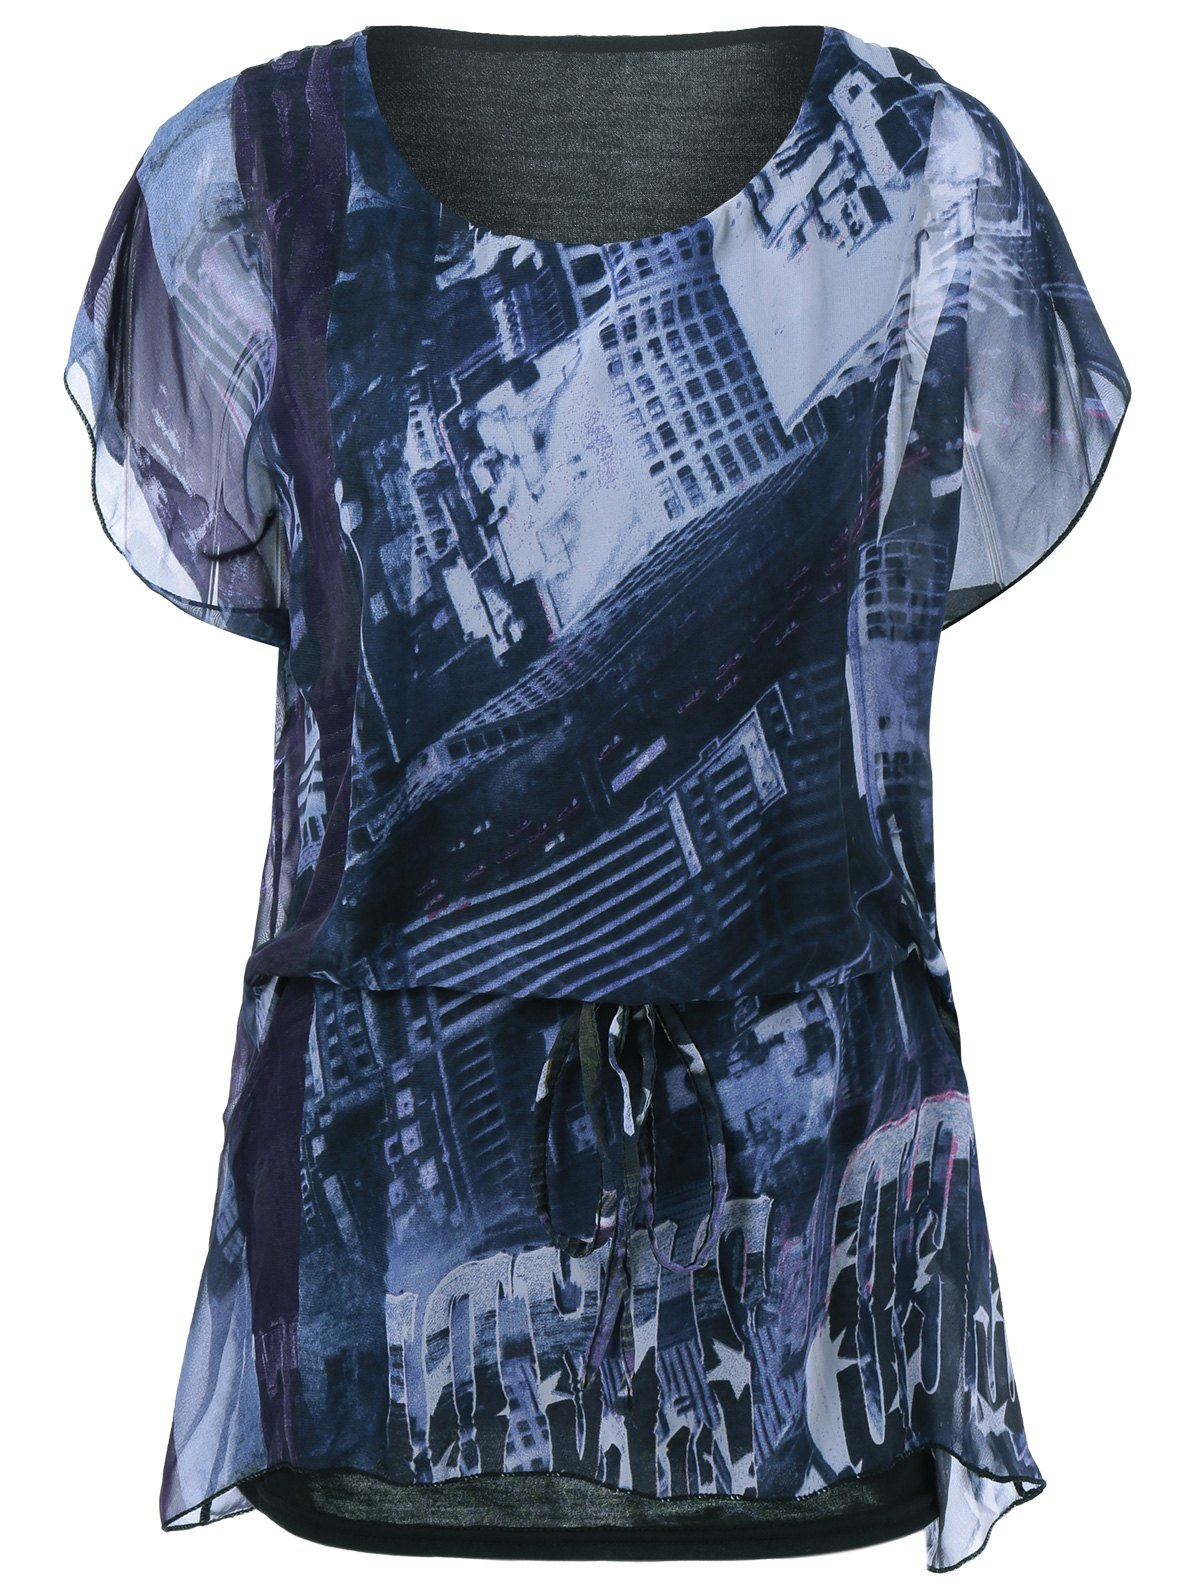 Cap Sleeve Loose-Fitting Printed T-Shirt - COLORMIX ONE SIZE